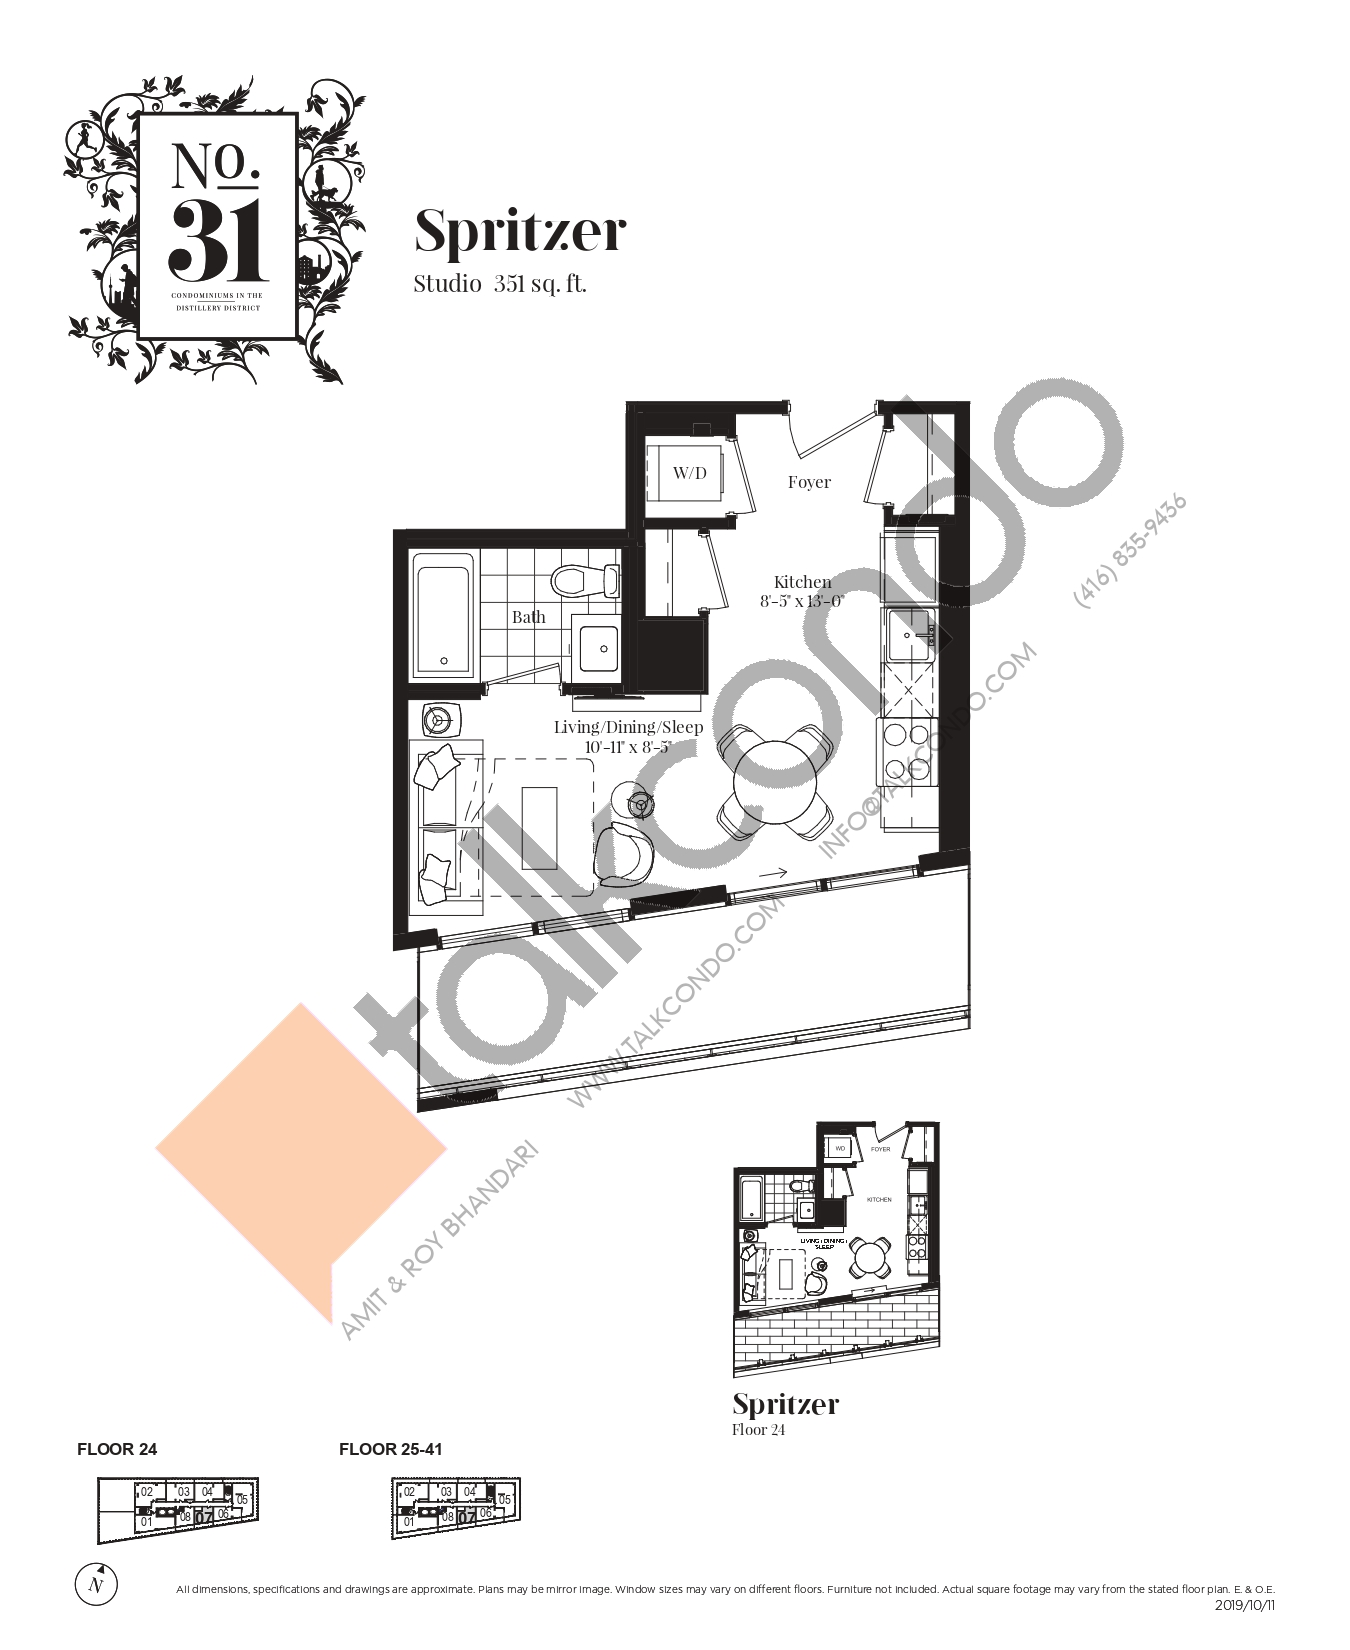 Spritzer Floor Plan at No. 31 Condos - 351 sq.ft